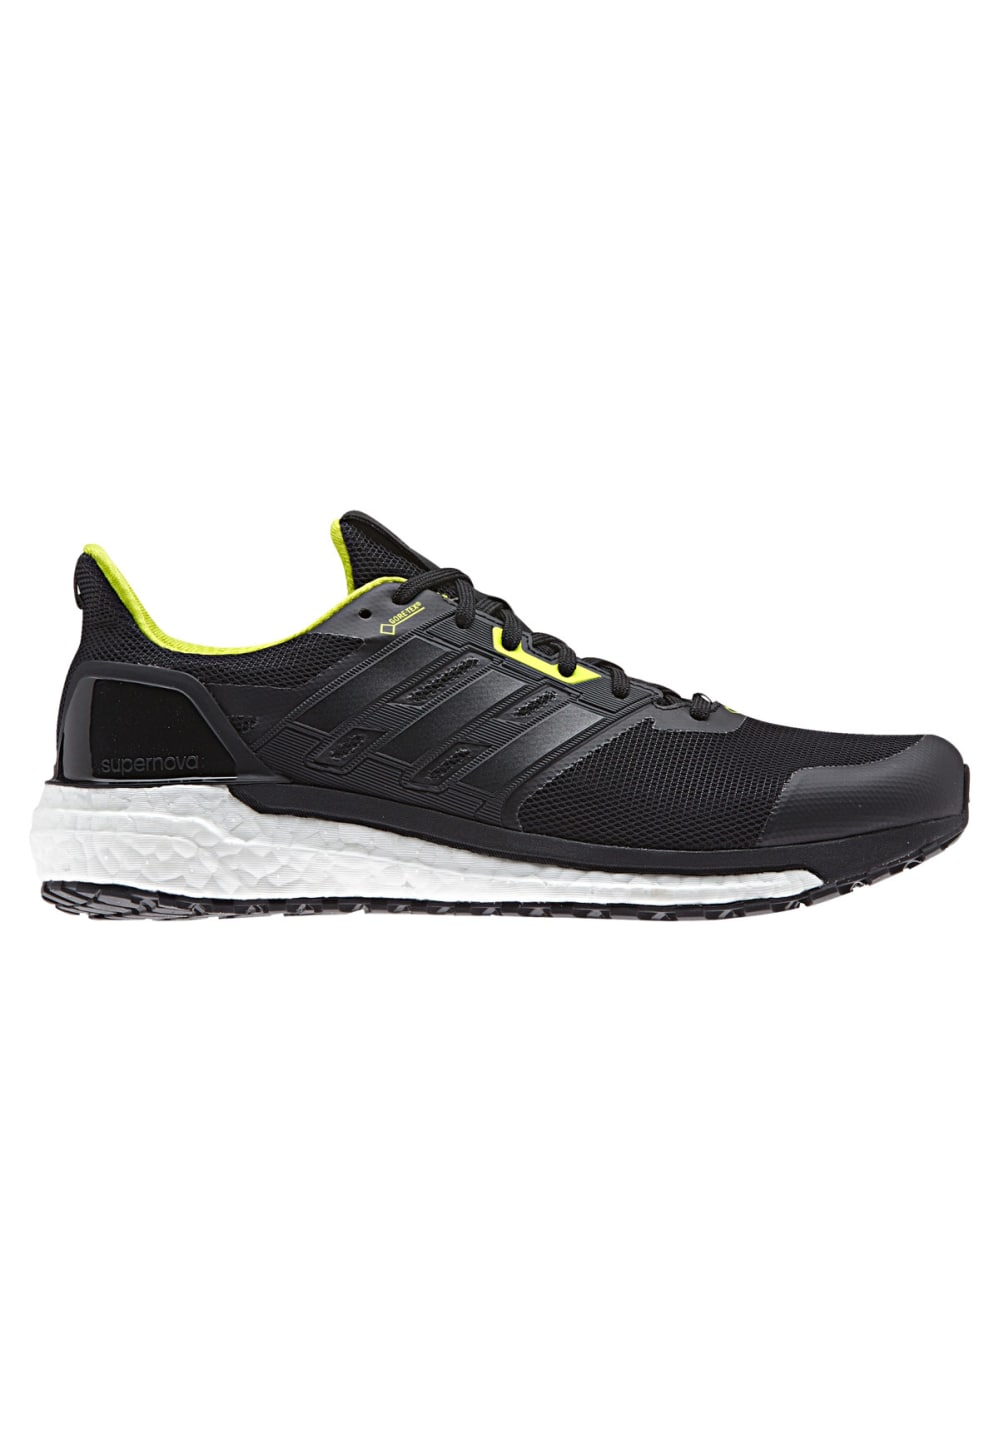 Homme Gore Supernova Chaussures Tex Adidas Running Pour Noir FJul1c3TK5